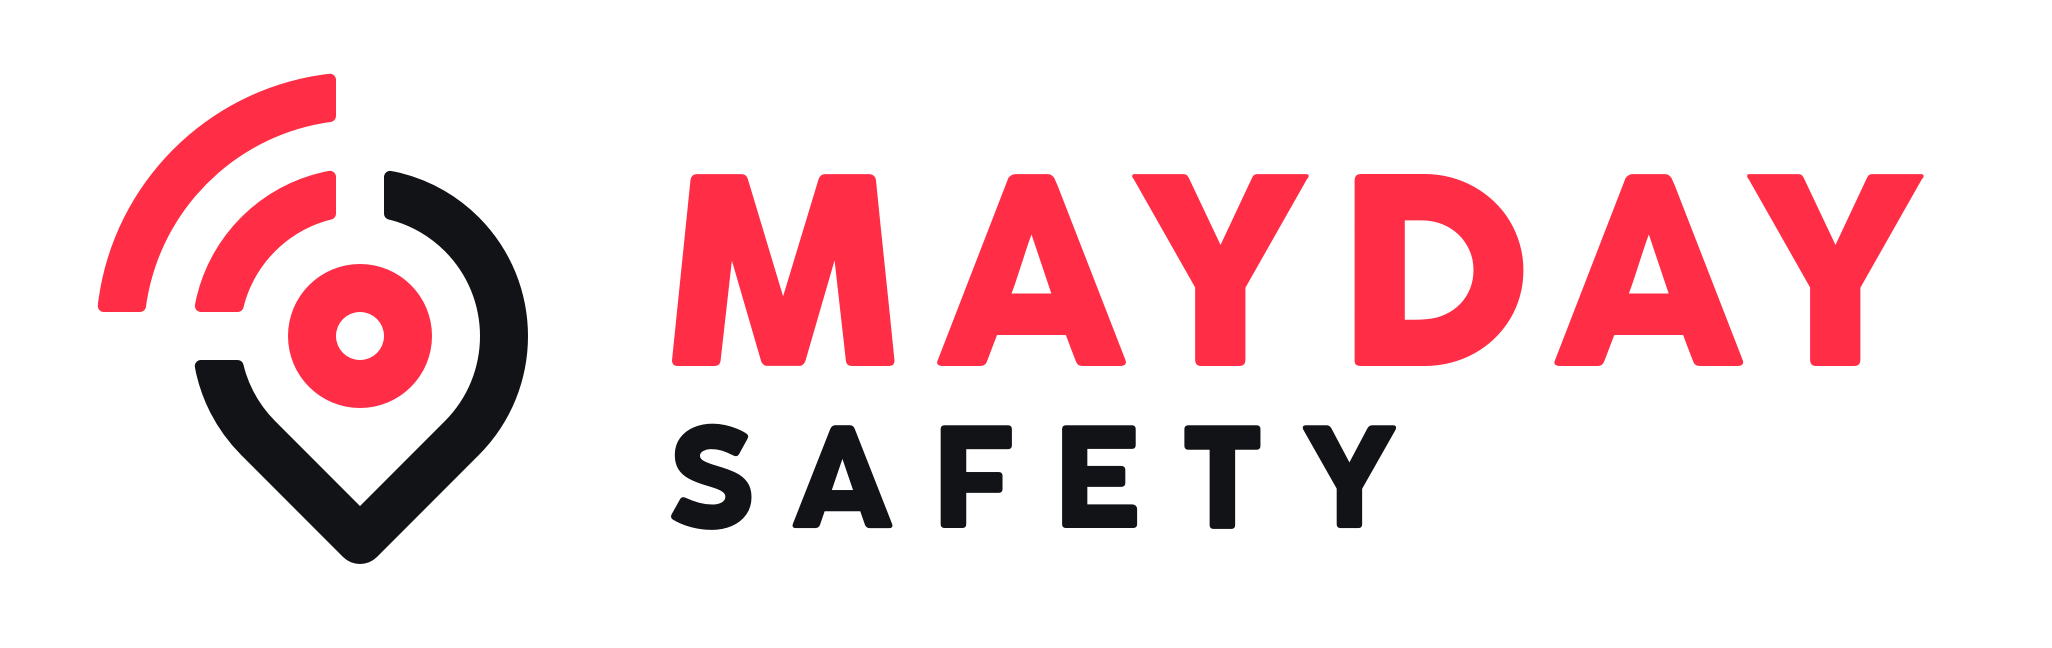 Mayday Safety